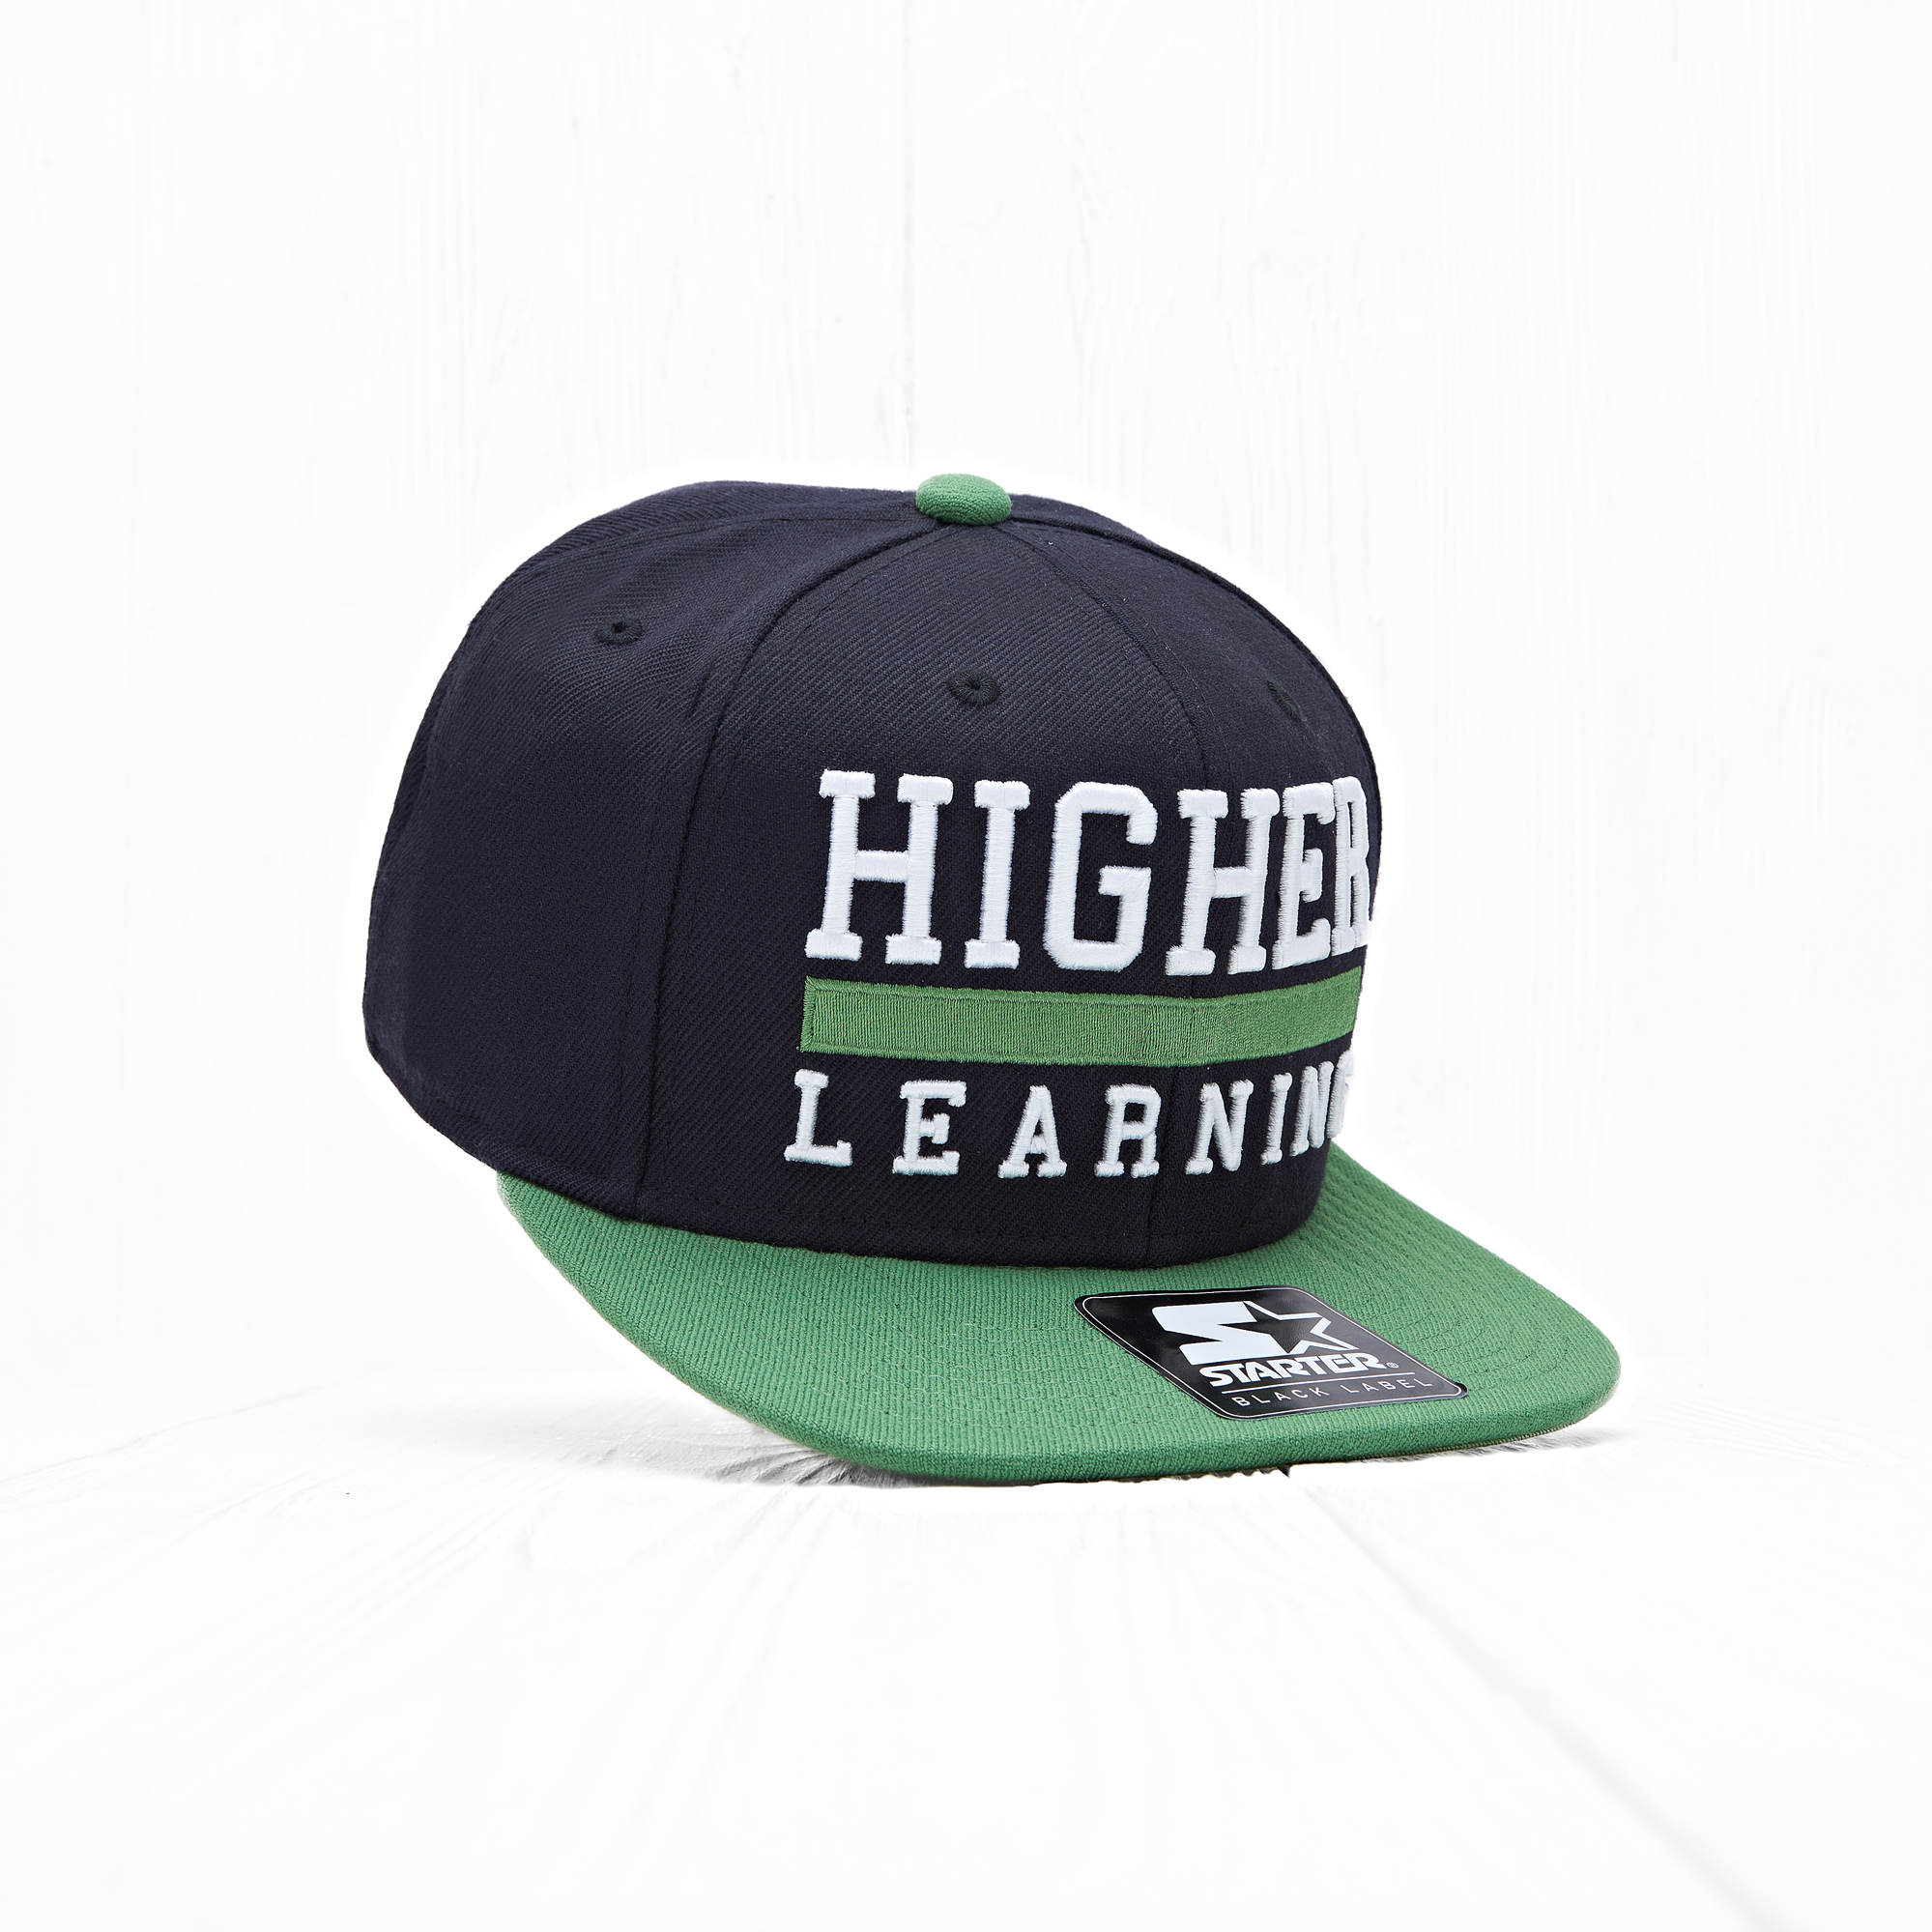 Снепбек Starter HIGHER LEARNING Black